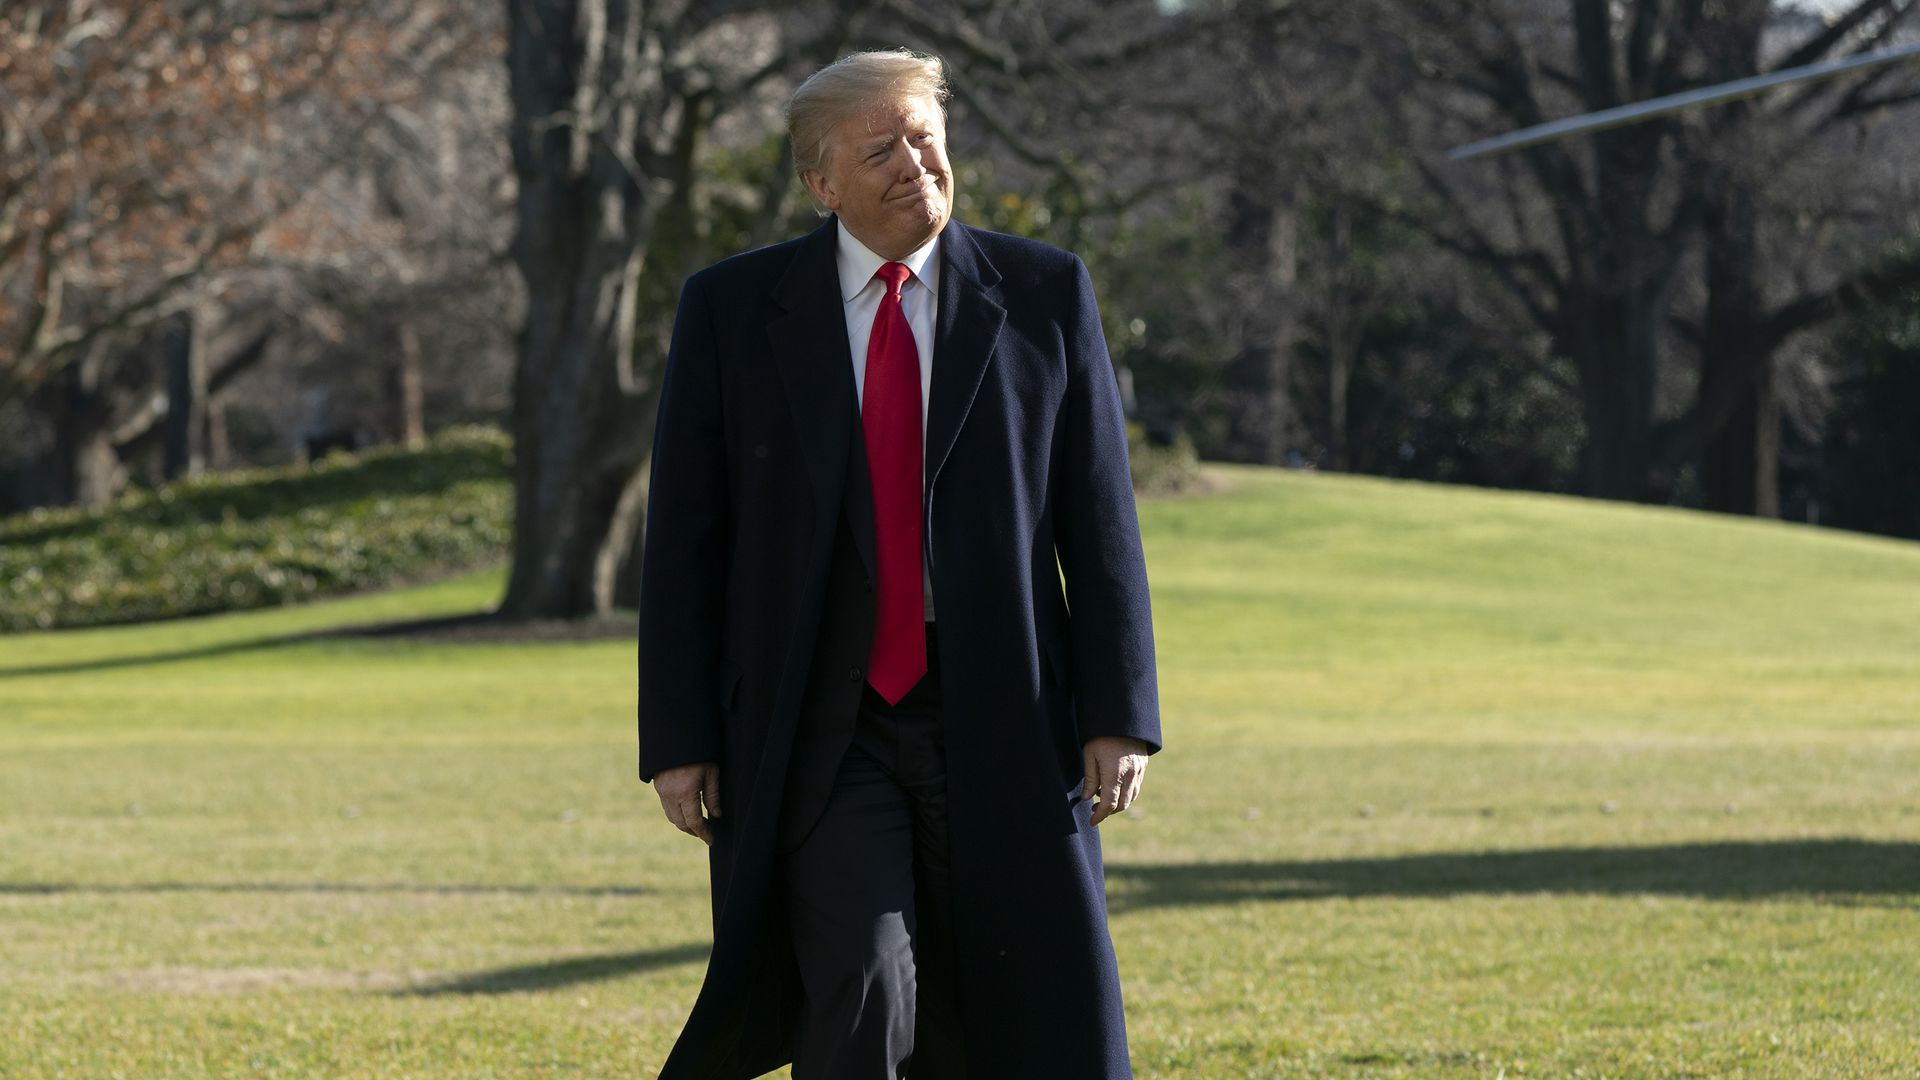 President Trump walks on the White House South Lawn